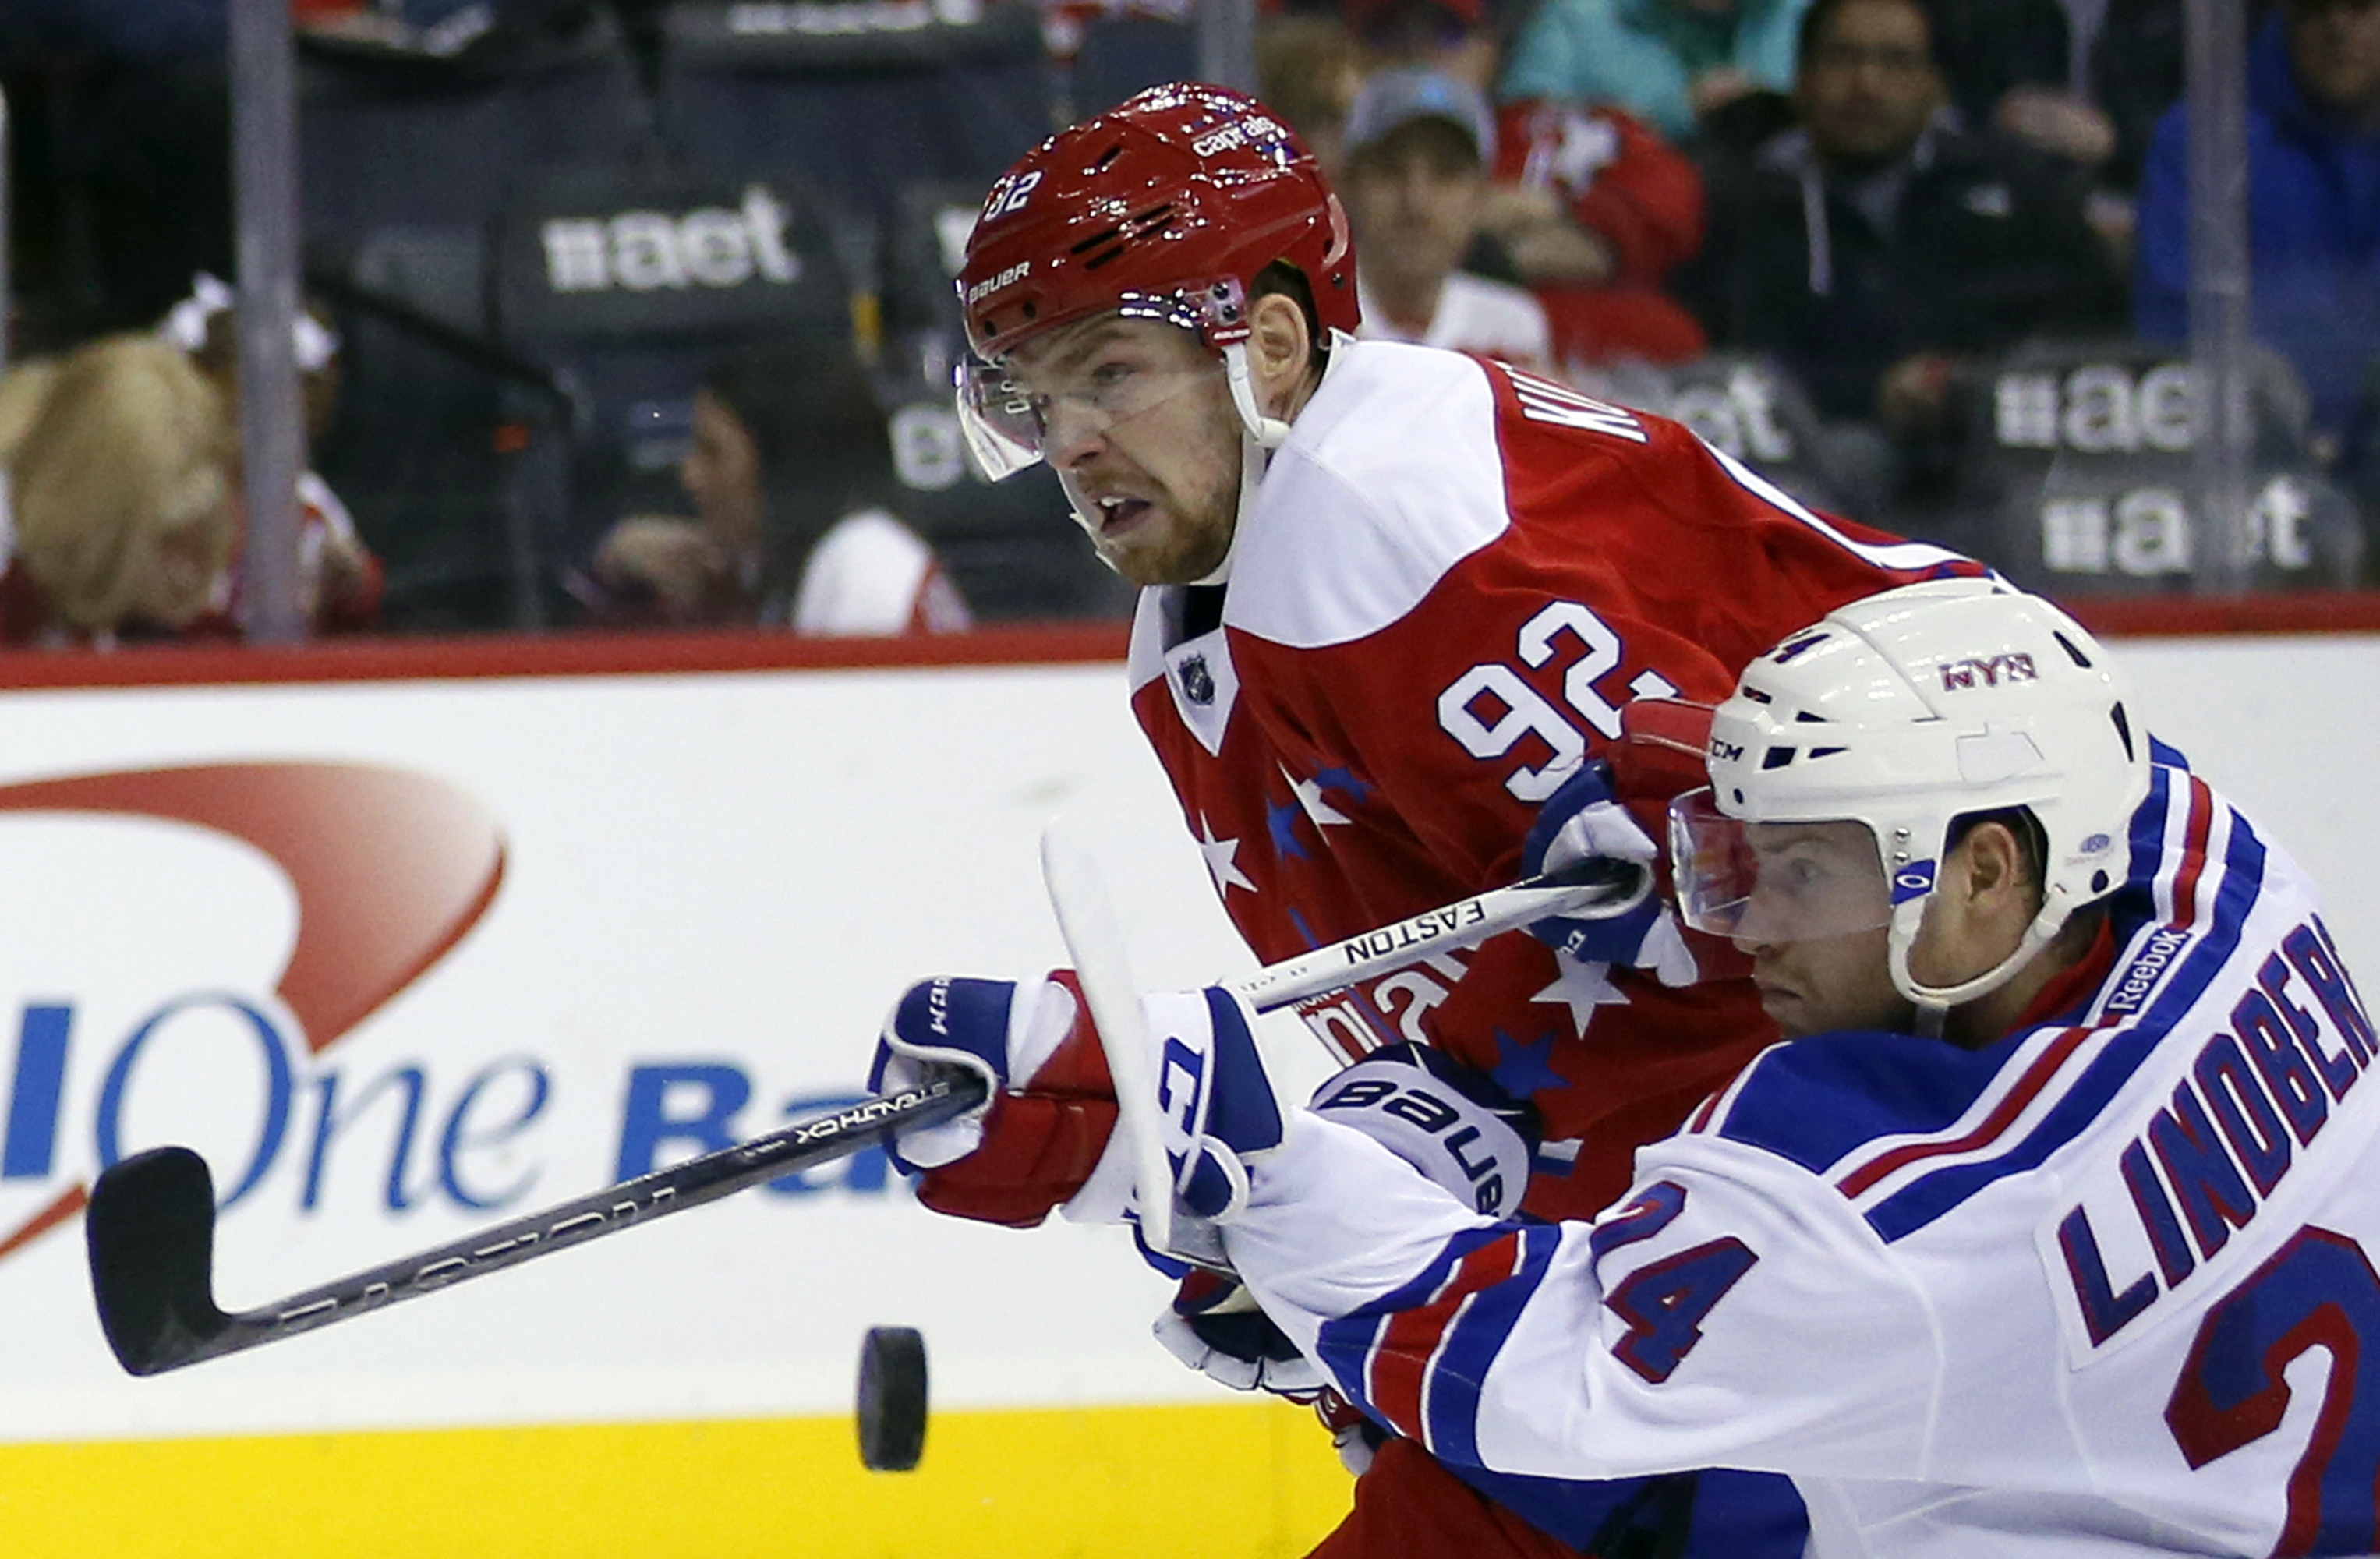 New York Rangers center Oscar Lindberg (24), from Sweden, tries to hit the puck as Washington Capitals center Evgeny Kuznetsov (92), from Russia, defends in the second period of an NHL hockey game, Sunday, Jan. 17, 2016, in Washington. (AP Photo/Alex Bran